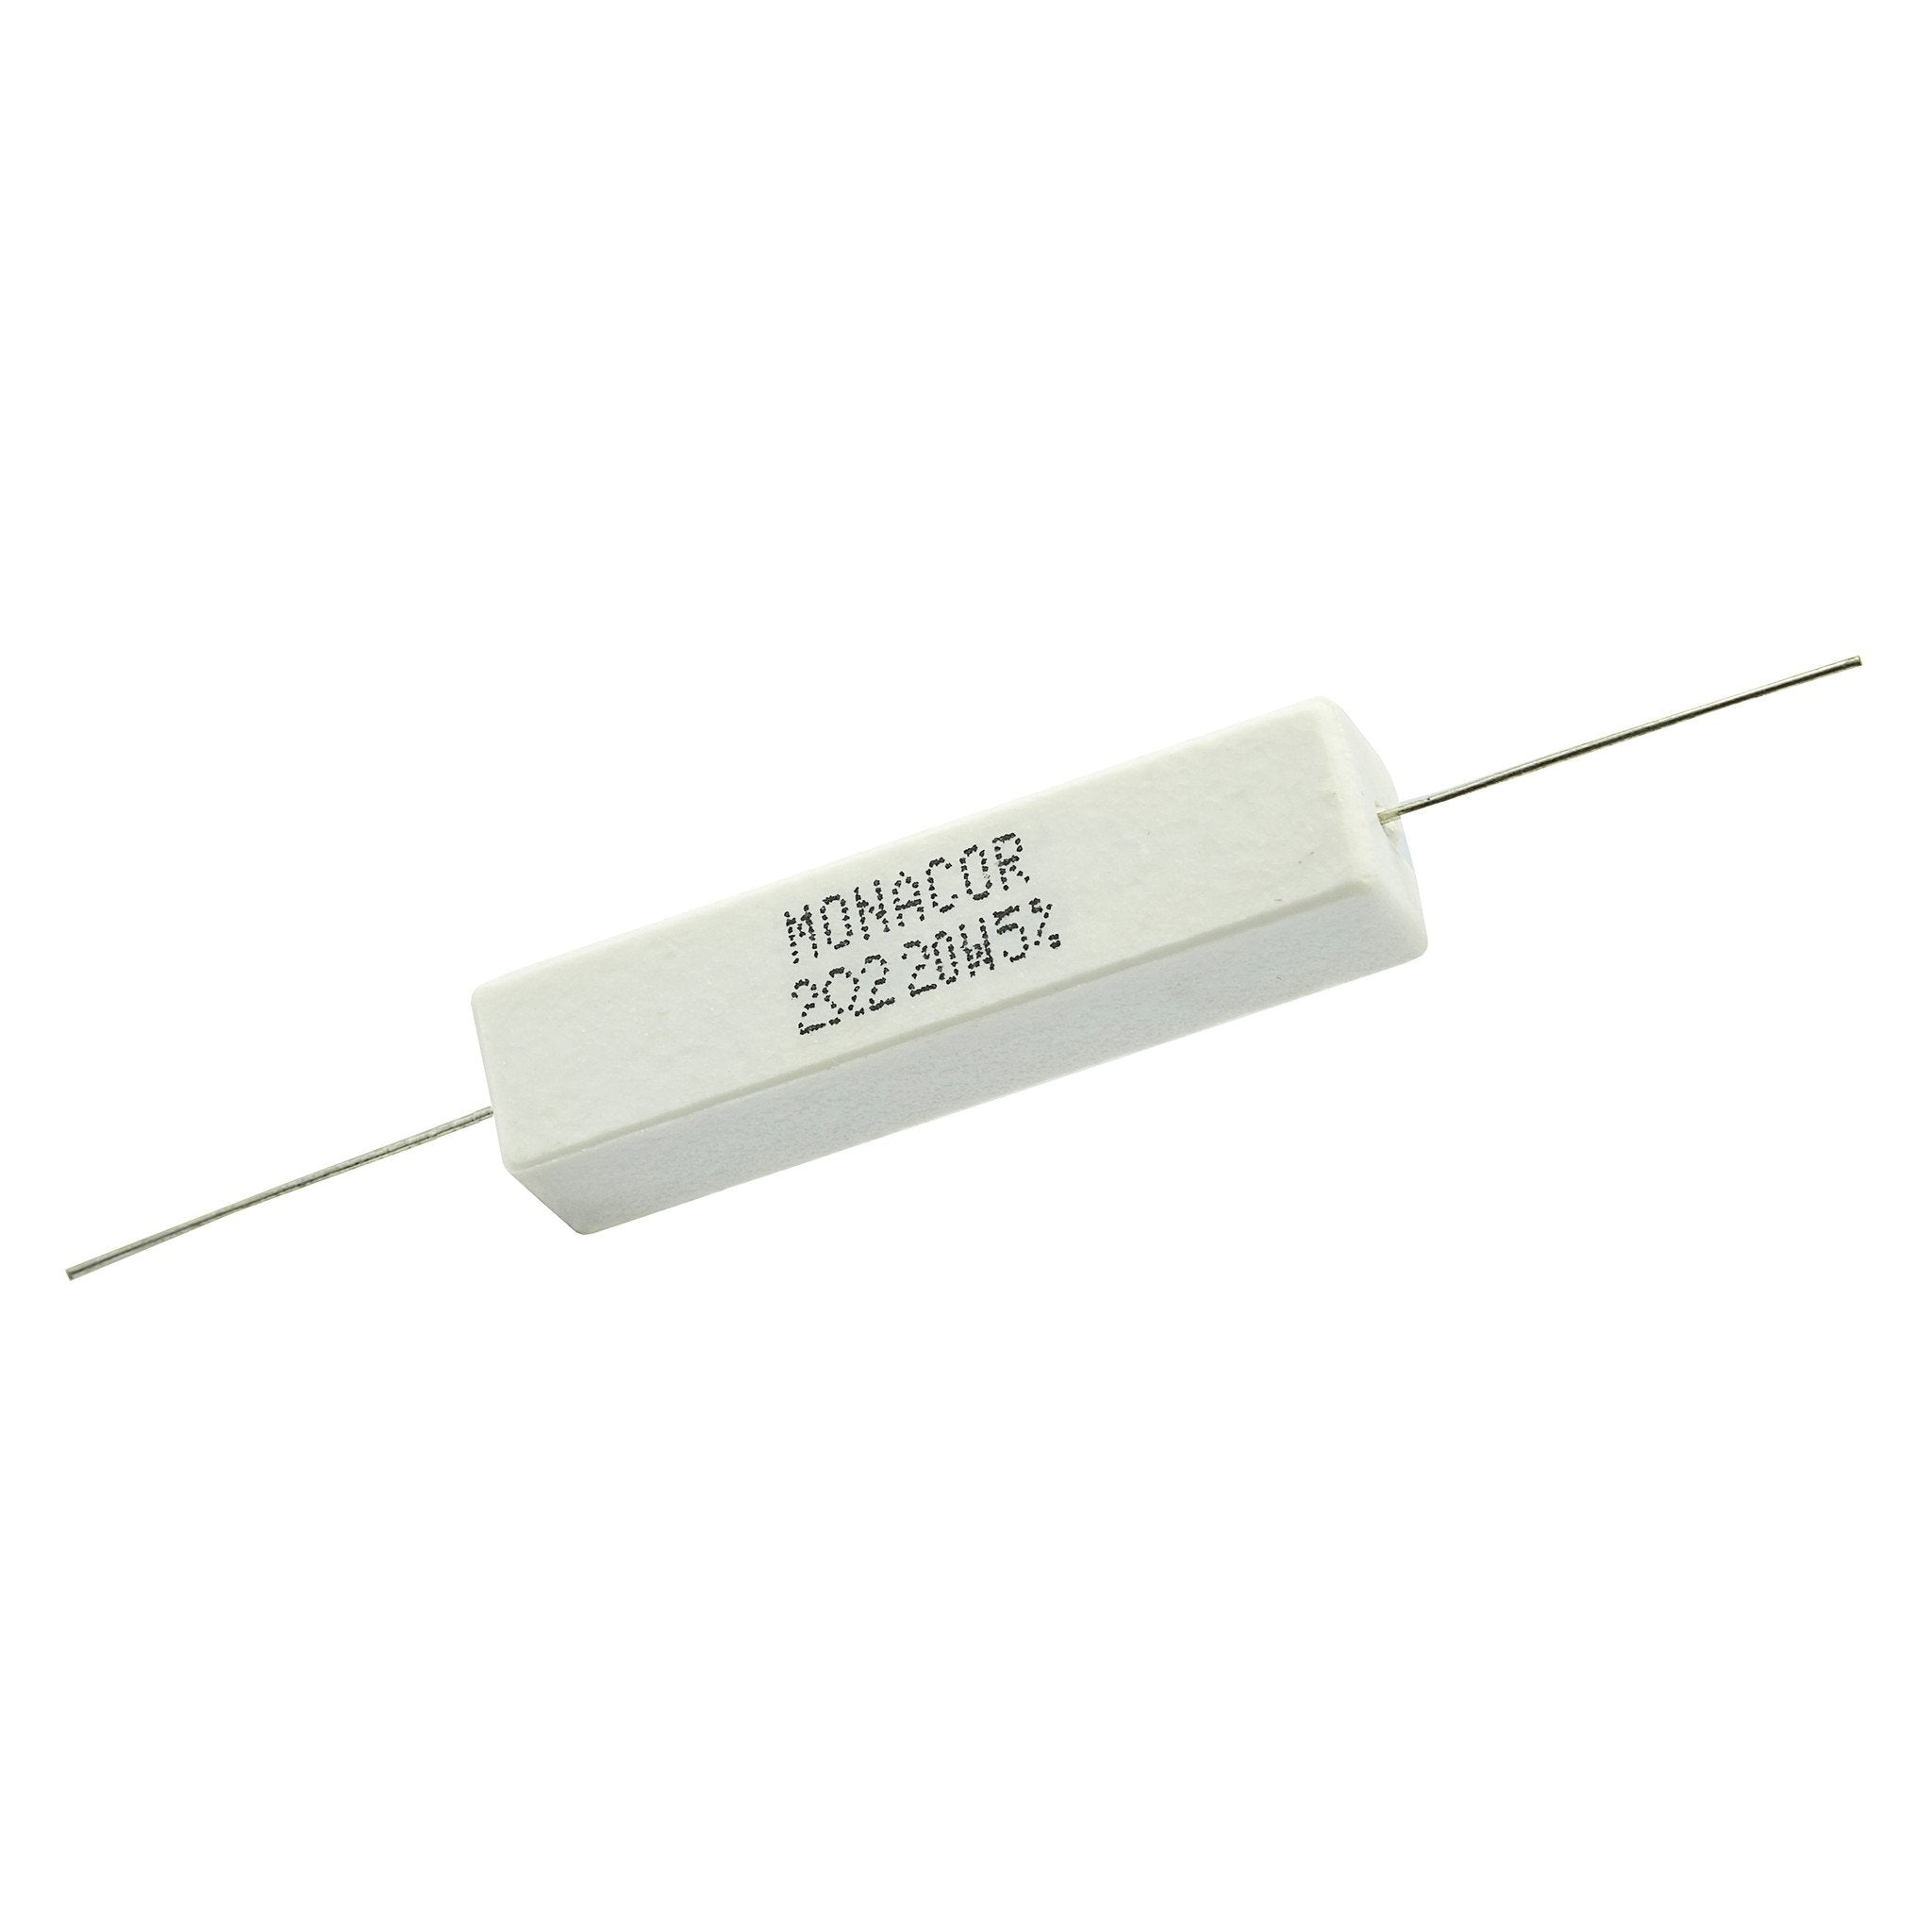 2.2 Ohm 20 Watt 5% Ceramic Wirewound Resistor - Willys-Hifi Ltd